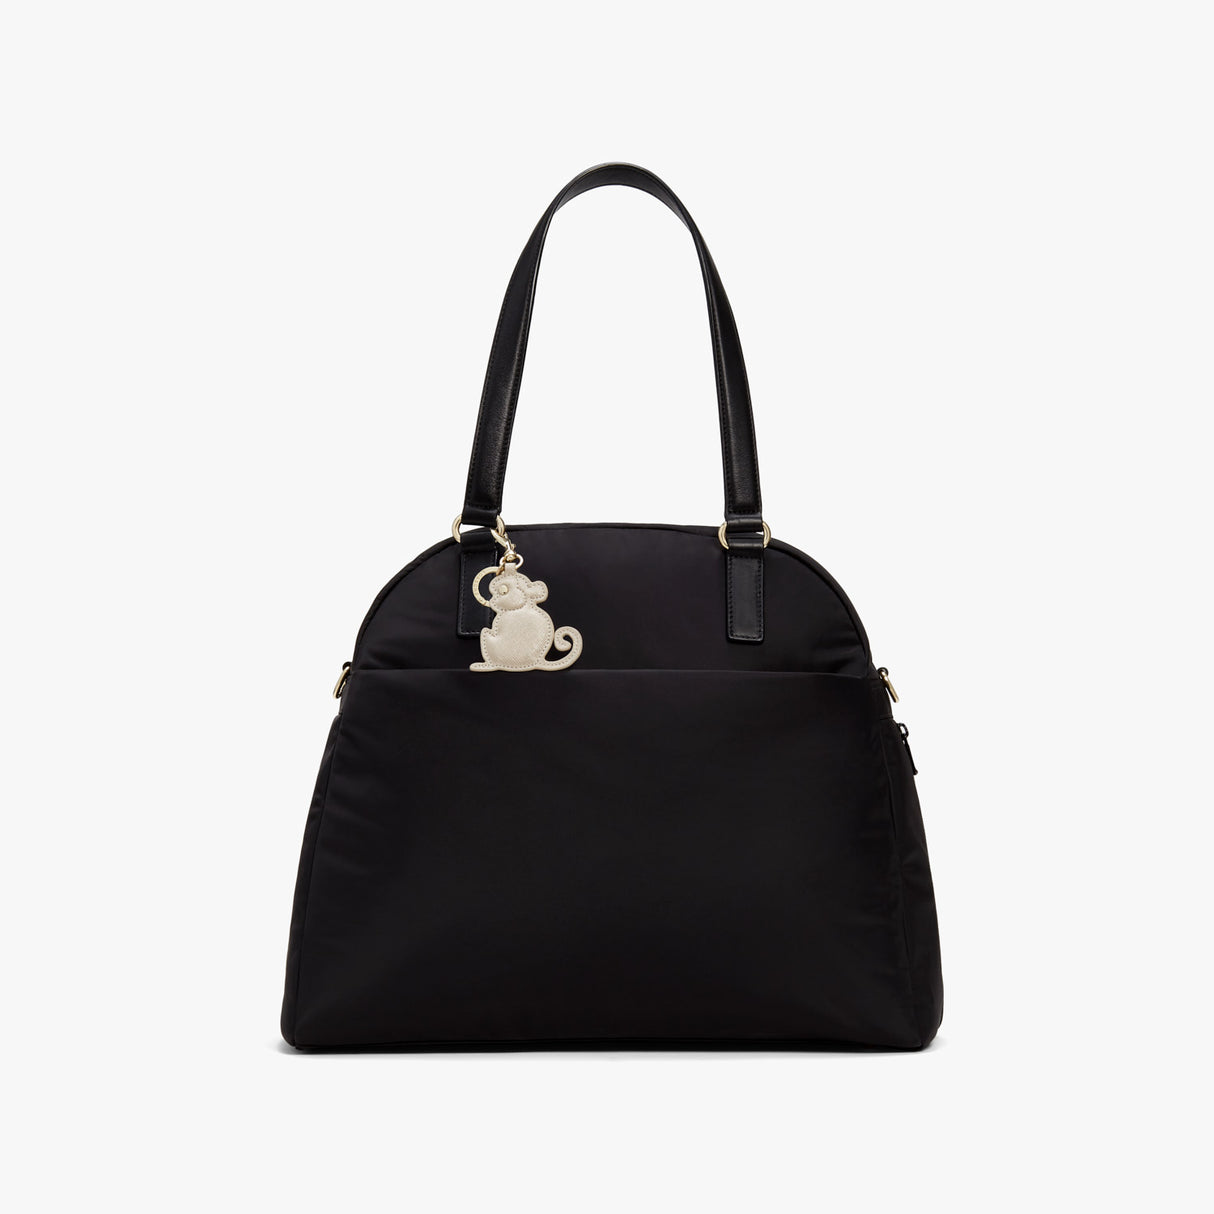 On Bag - Year of the Monkey Charm - Saffiano Leather - Champagne - Small Accessory - Lo & Sons